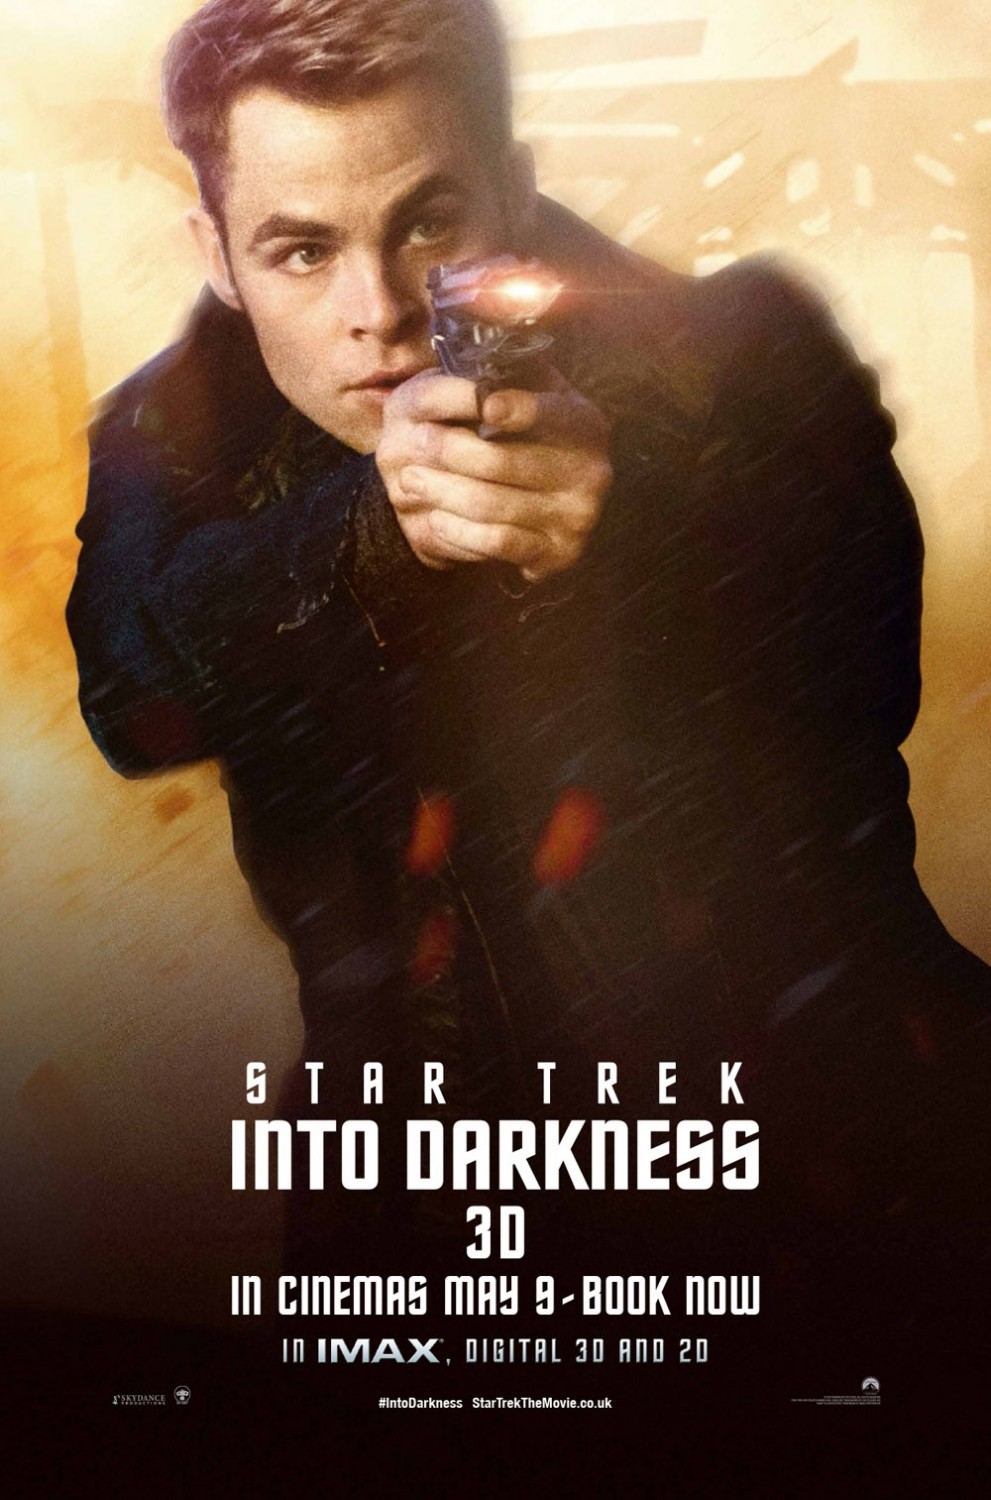 Star Trek into Darkness - 3D Blu-ray Review | High Def Digest